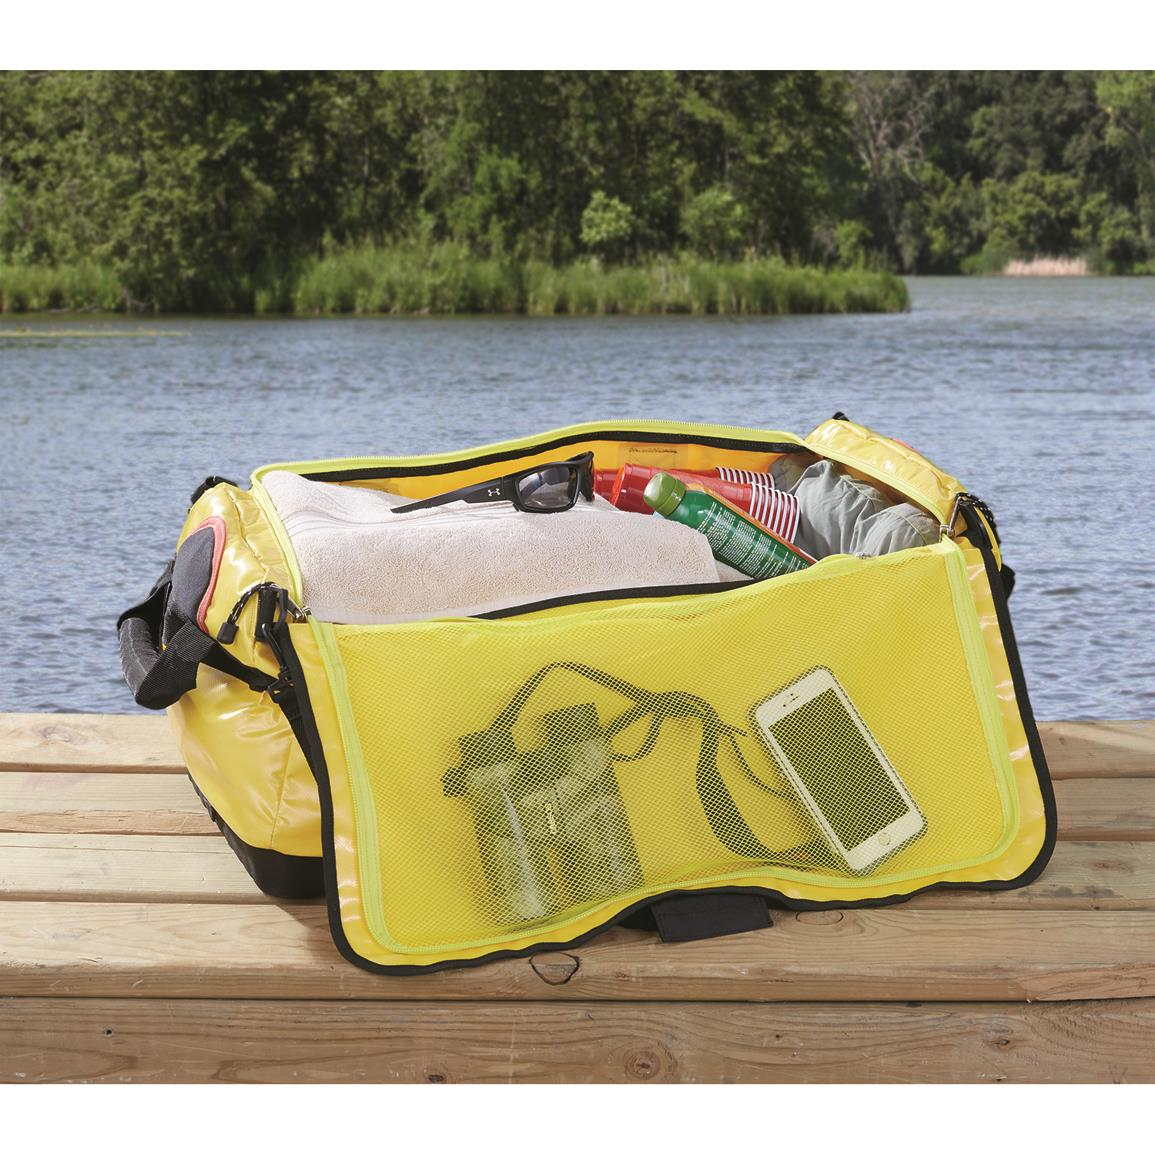 Waterproof-Floating-Duffel-Bag-Boat-Canoe-Kayak-Jet-Ski-Large-Dry-Pack-Sports thumbnail 2